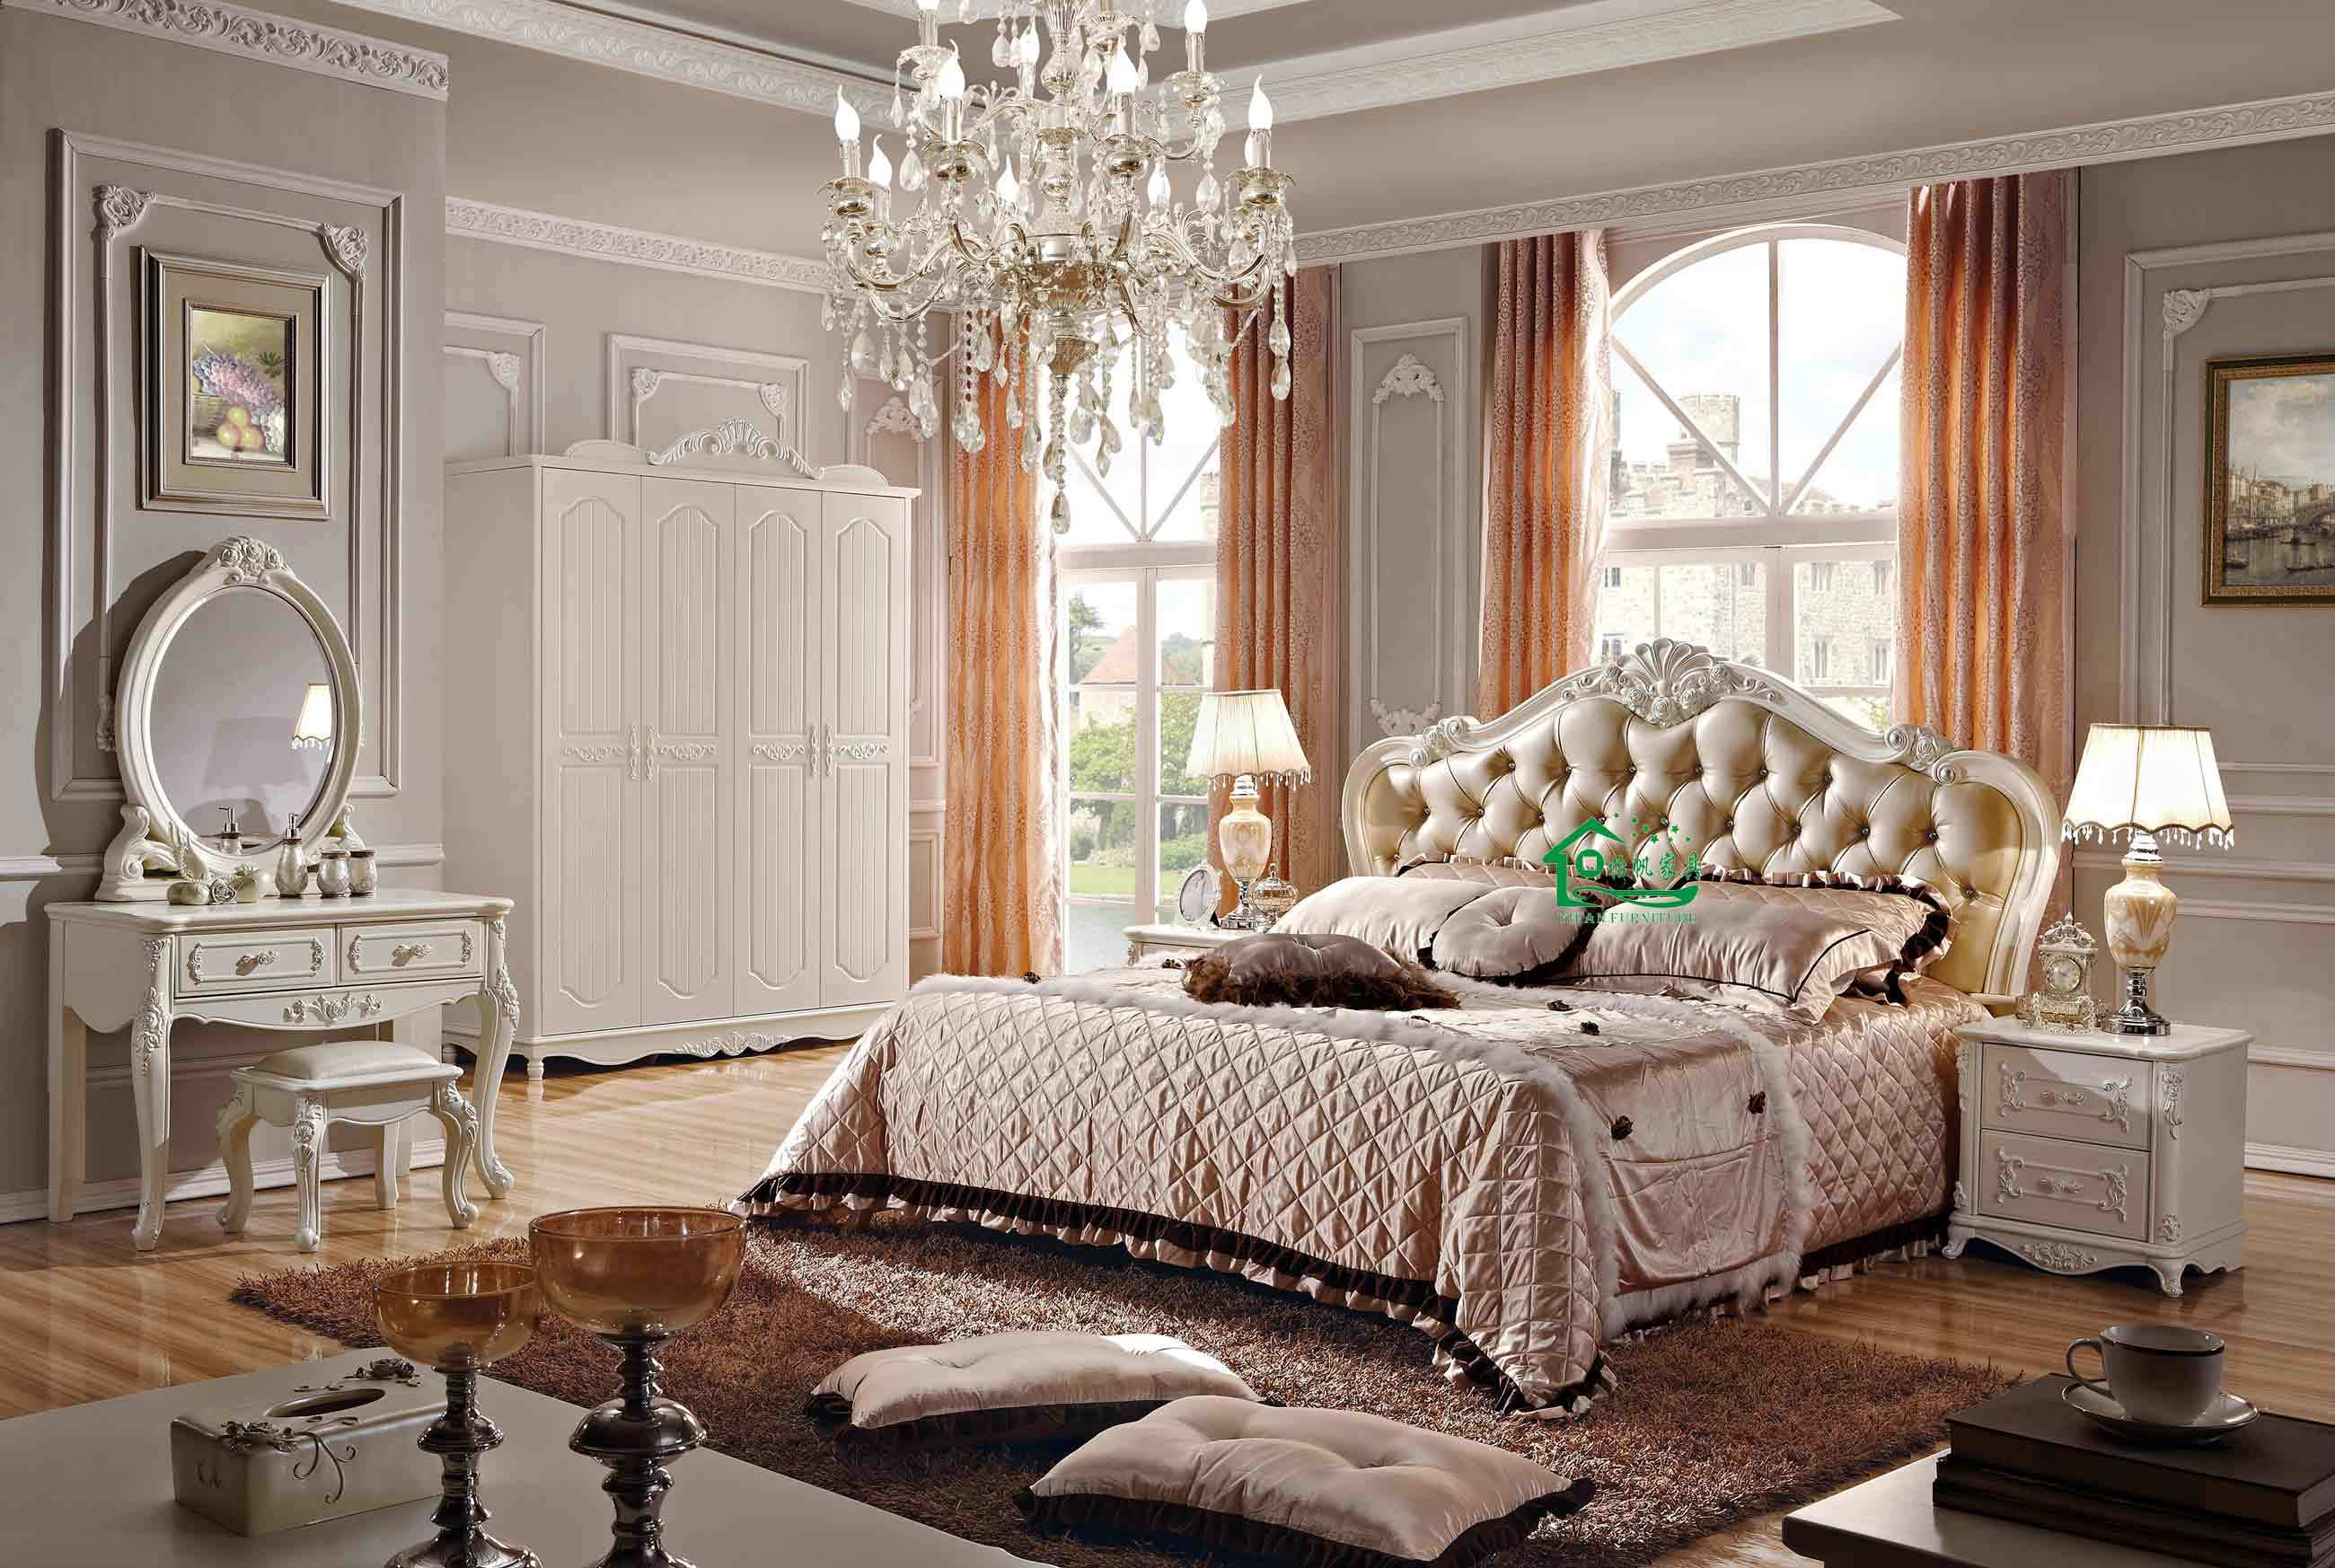 New Classic Bedroom Furniture China New Classic Wooden Bedroom Furniture 808 China Wooden